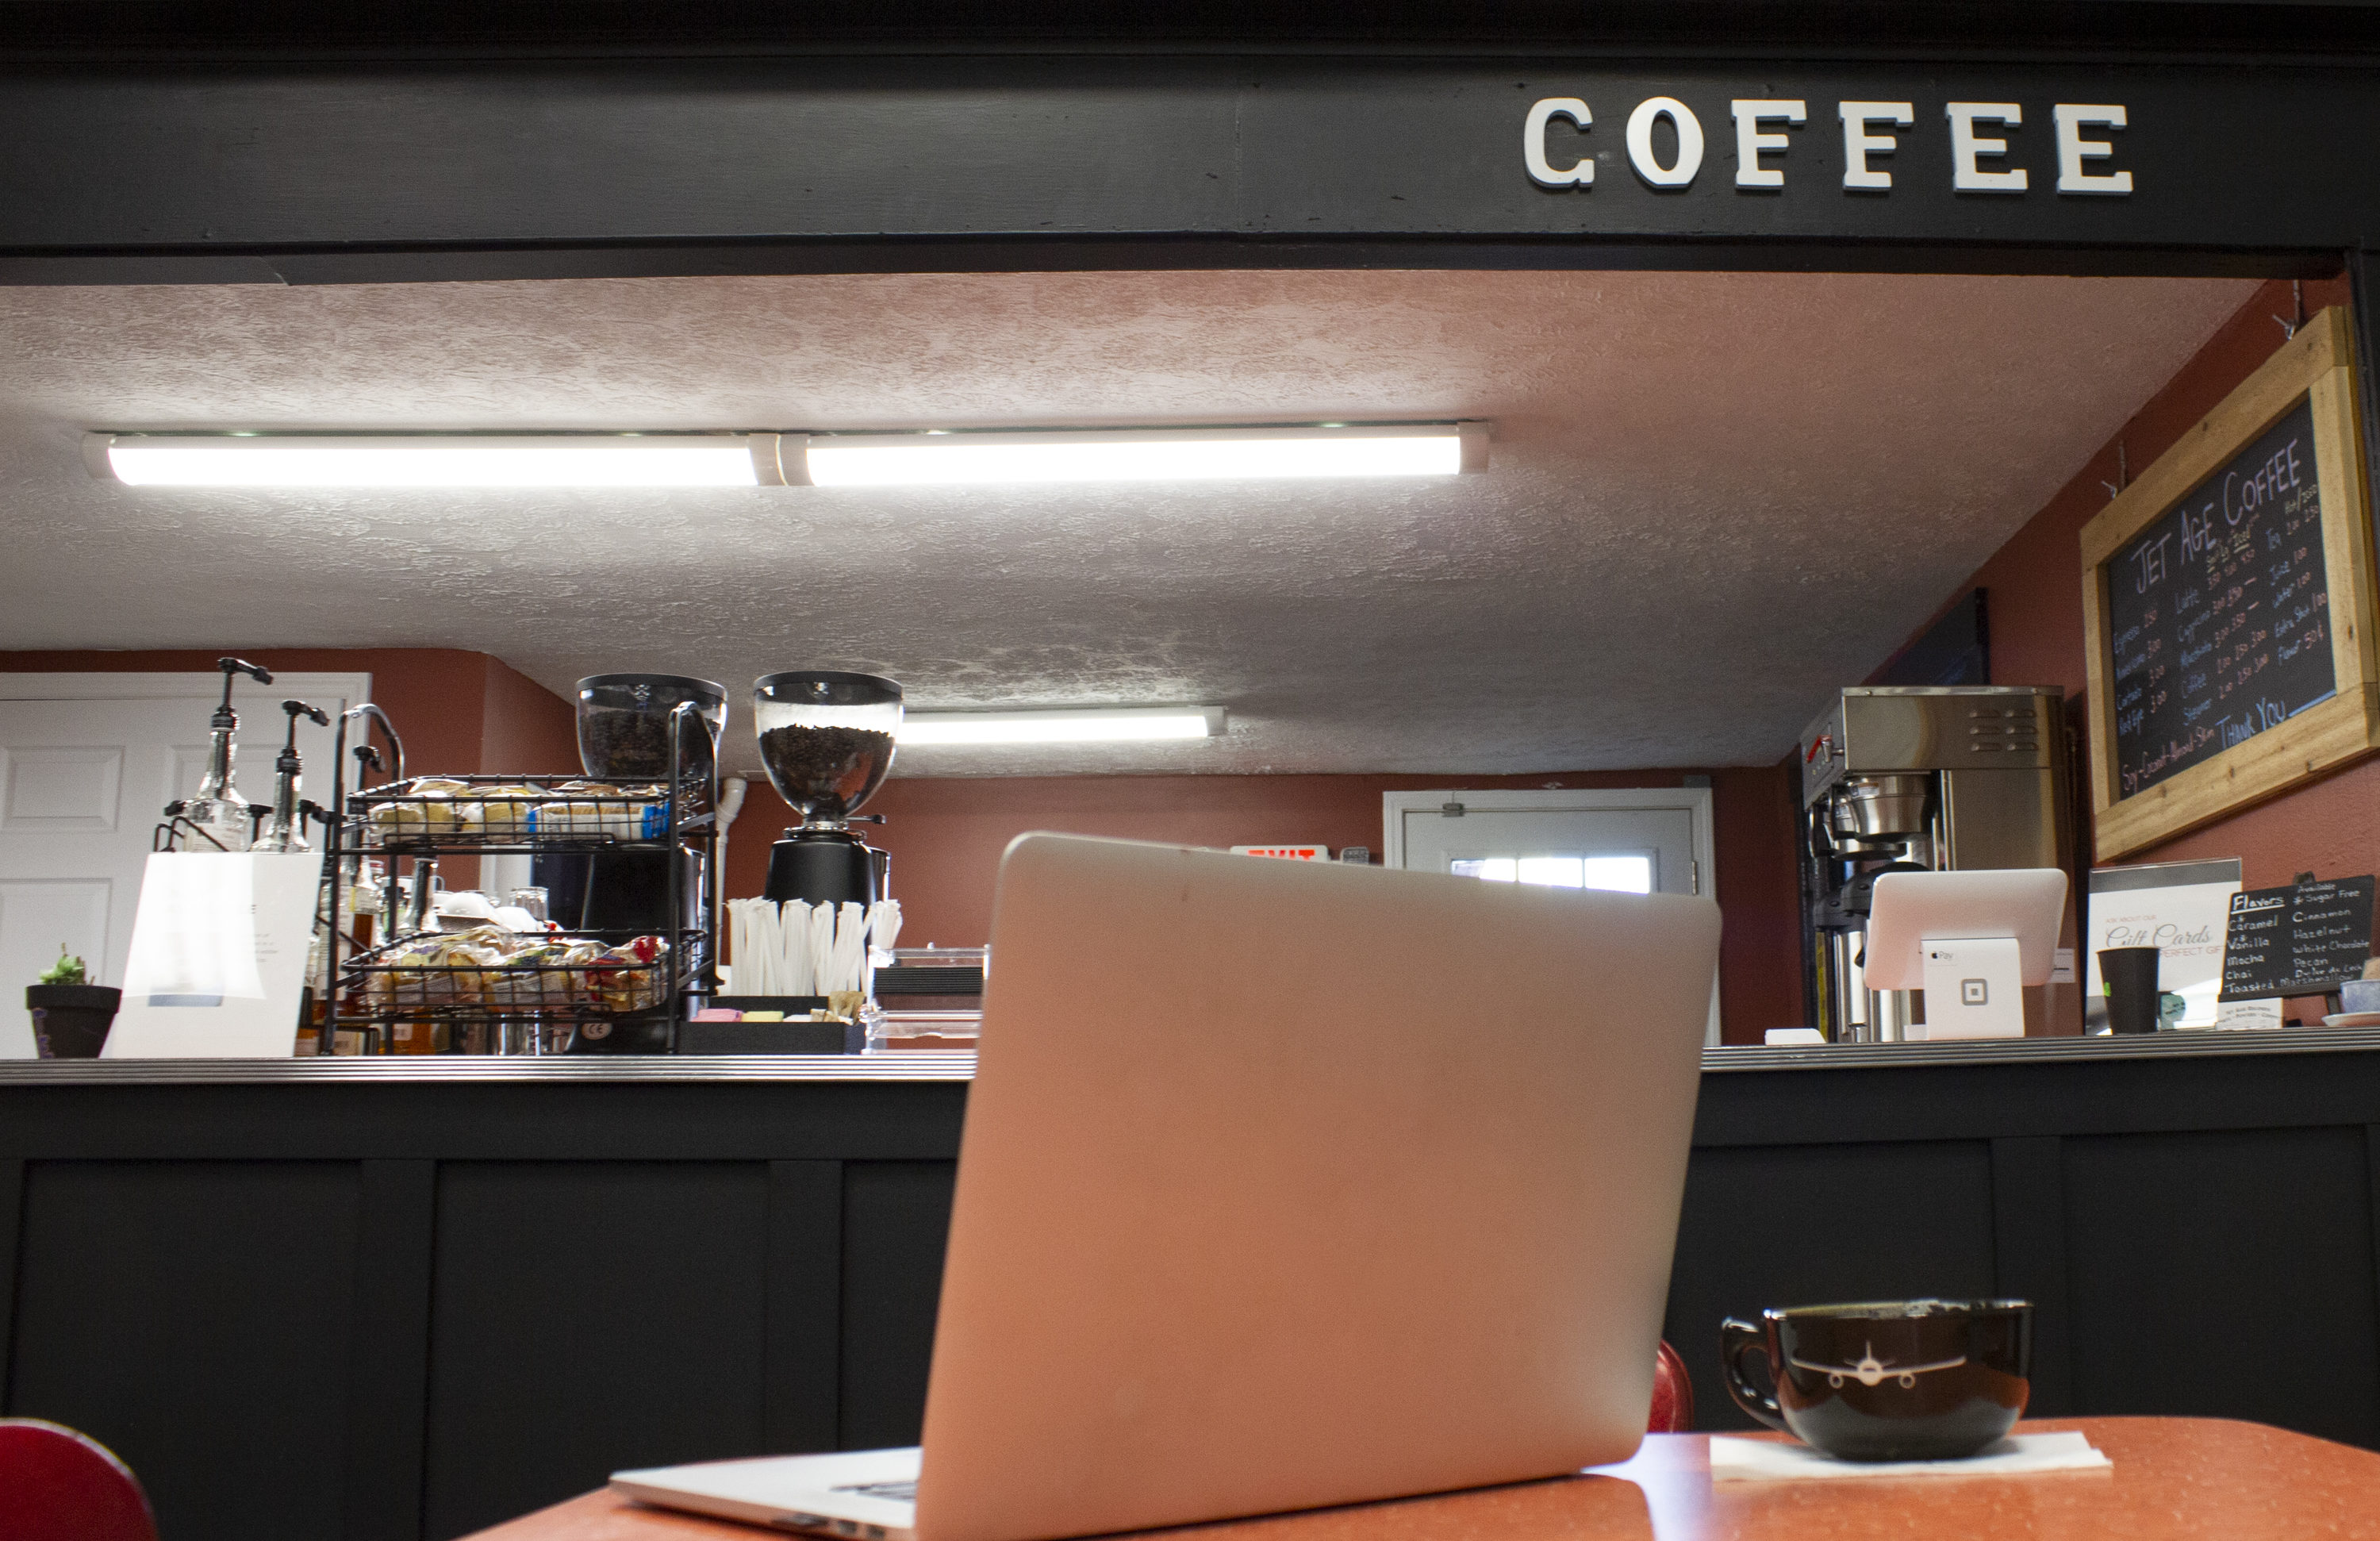 Grab a coffee, listen to some music, and relax while you get some work done in our cafe.